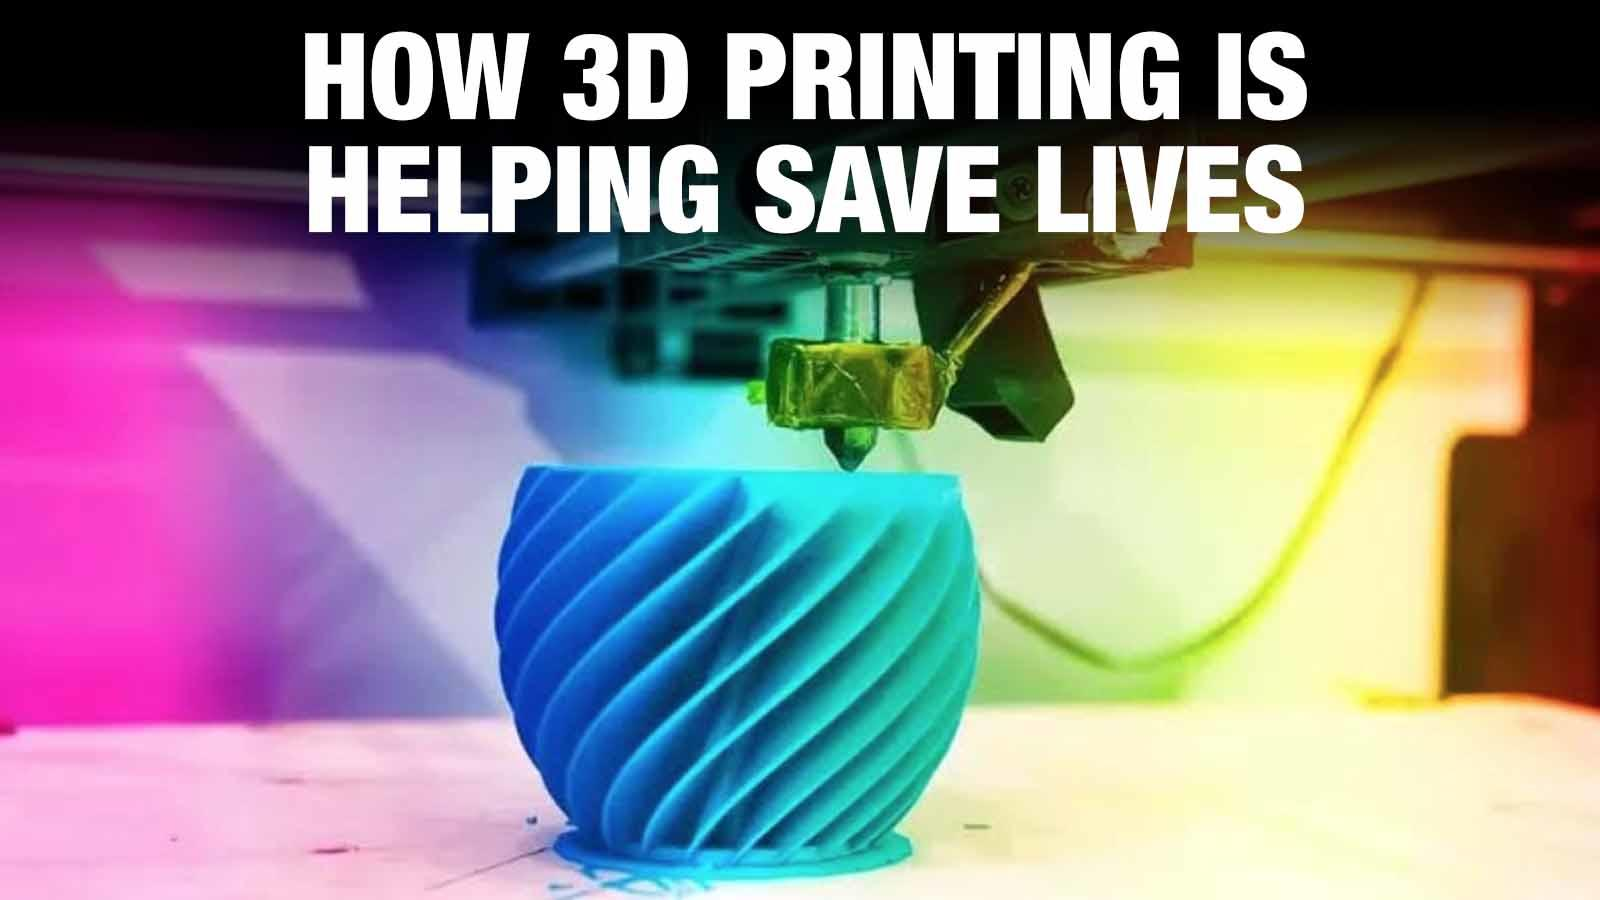 How 3D printing is helping save lives